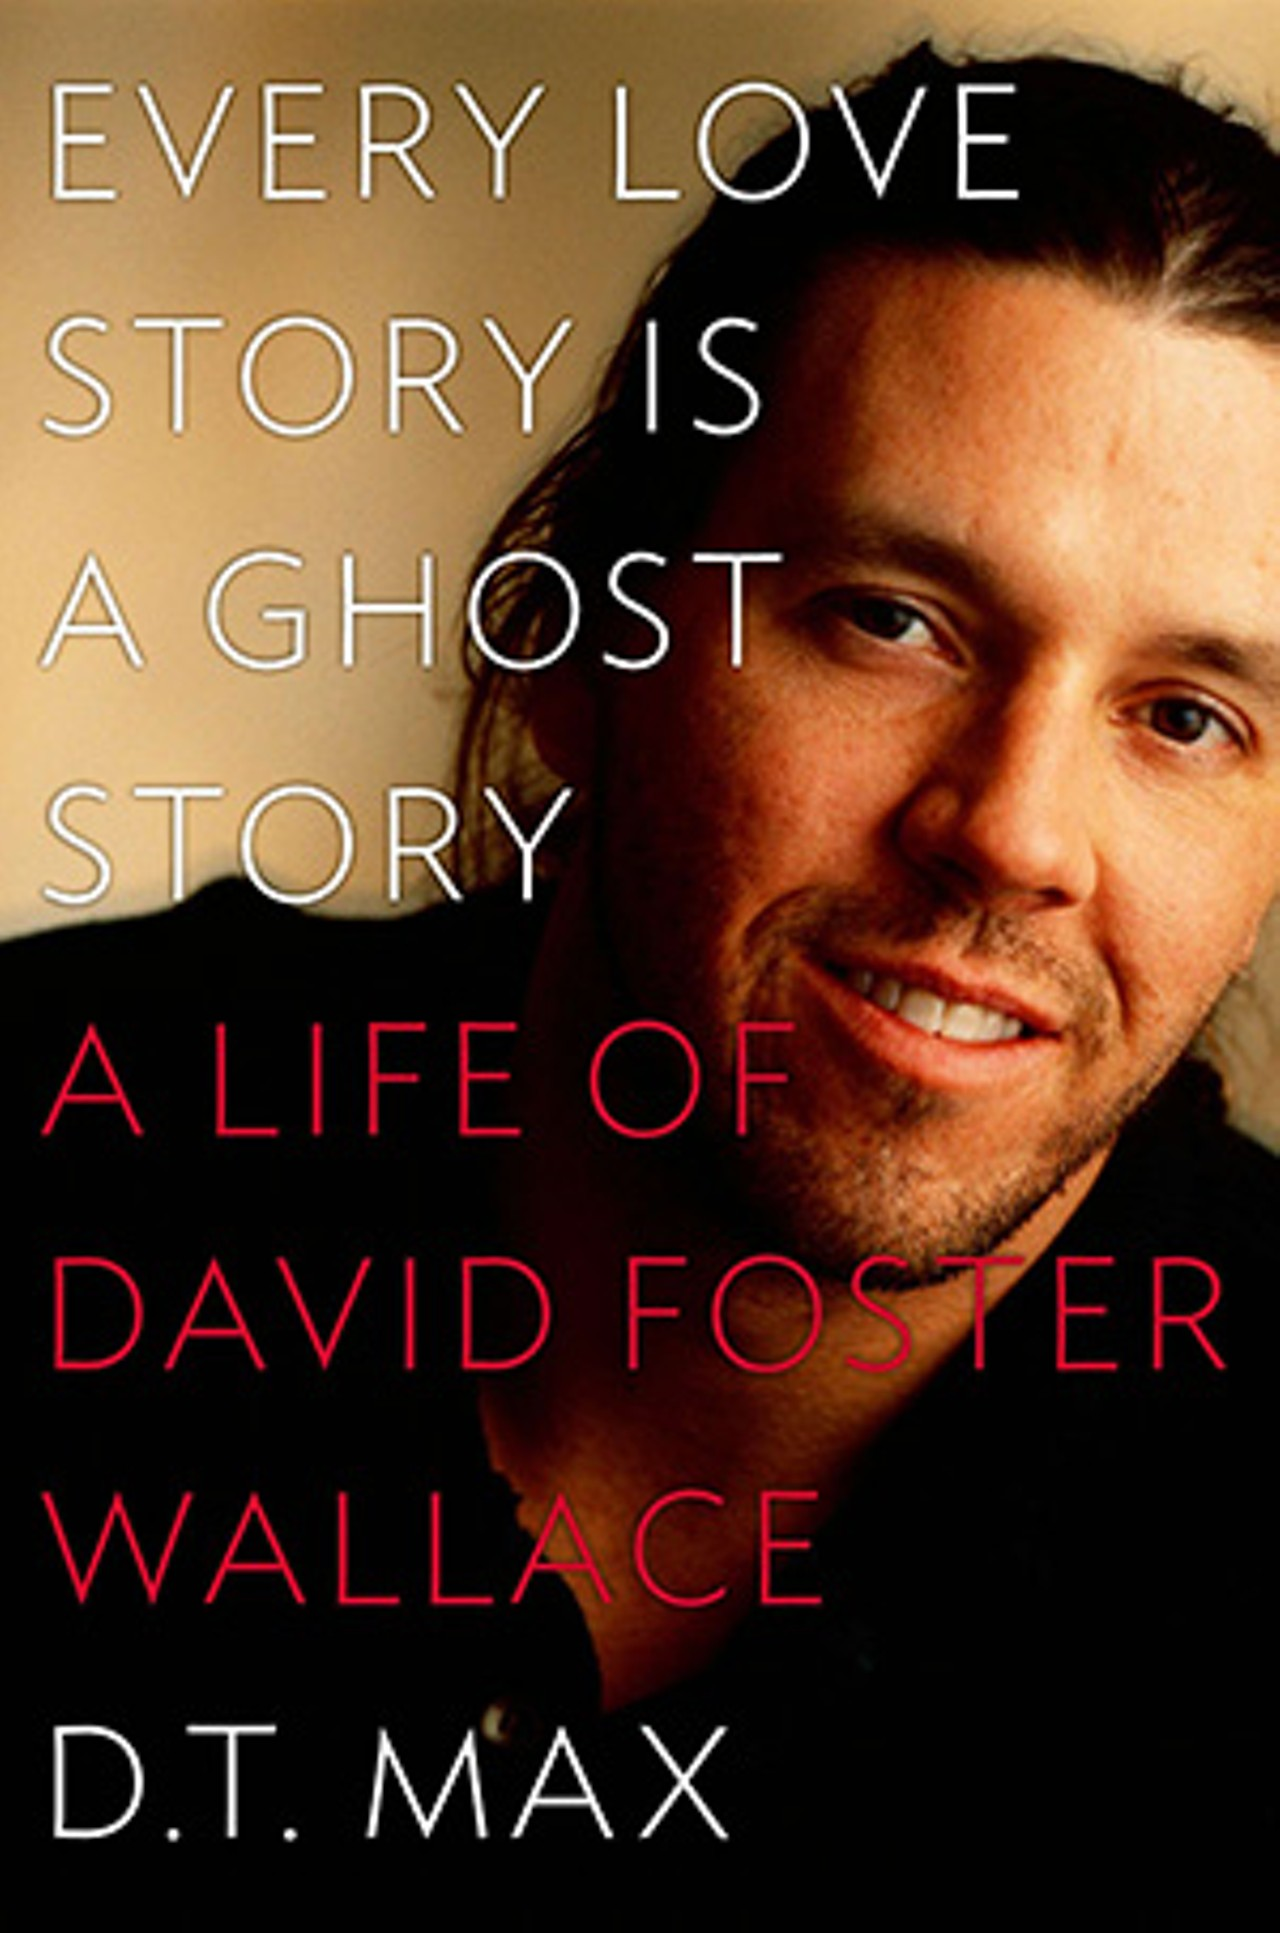 david foster wallace essay 9/11 Reprise: david foster wallace on legacy of 9/11 james fallows sep 9, 2010  recently i mentioned george friedman's stratfor essay arguing that,  it is by the late david foster wallace,.